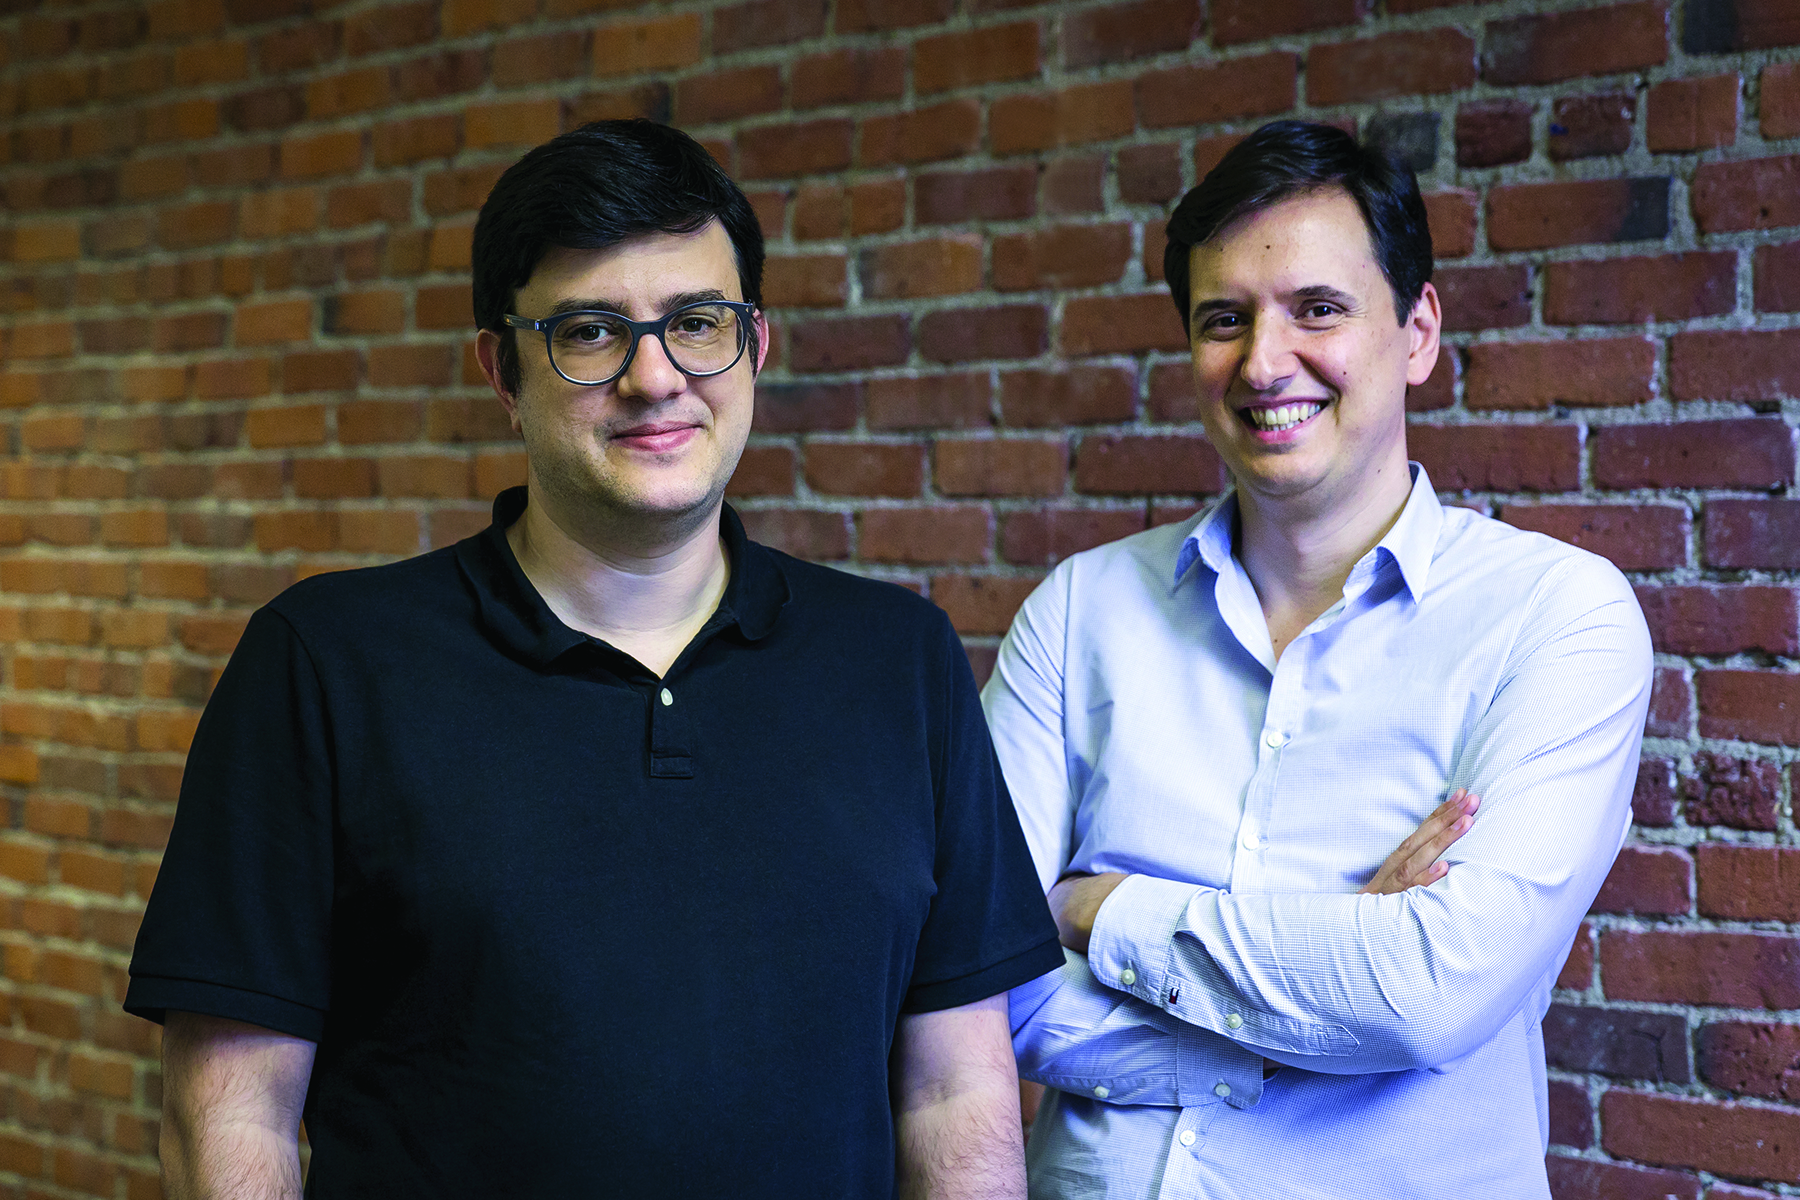 Founders of Workable, Nikos and Spyros.